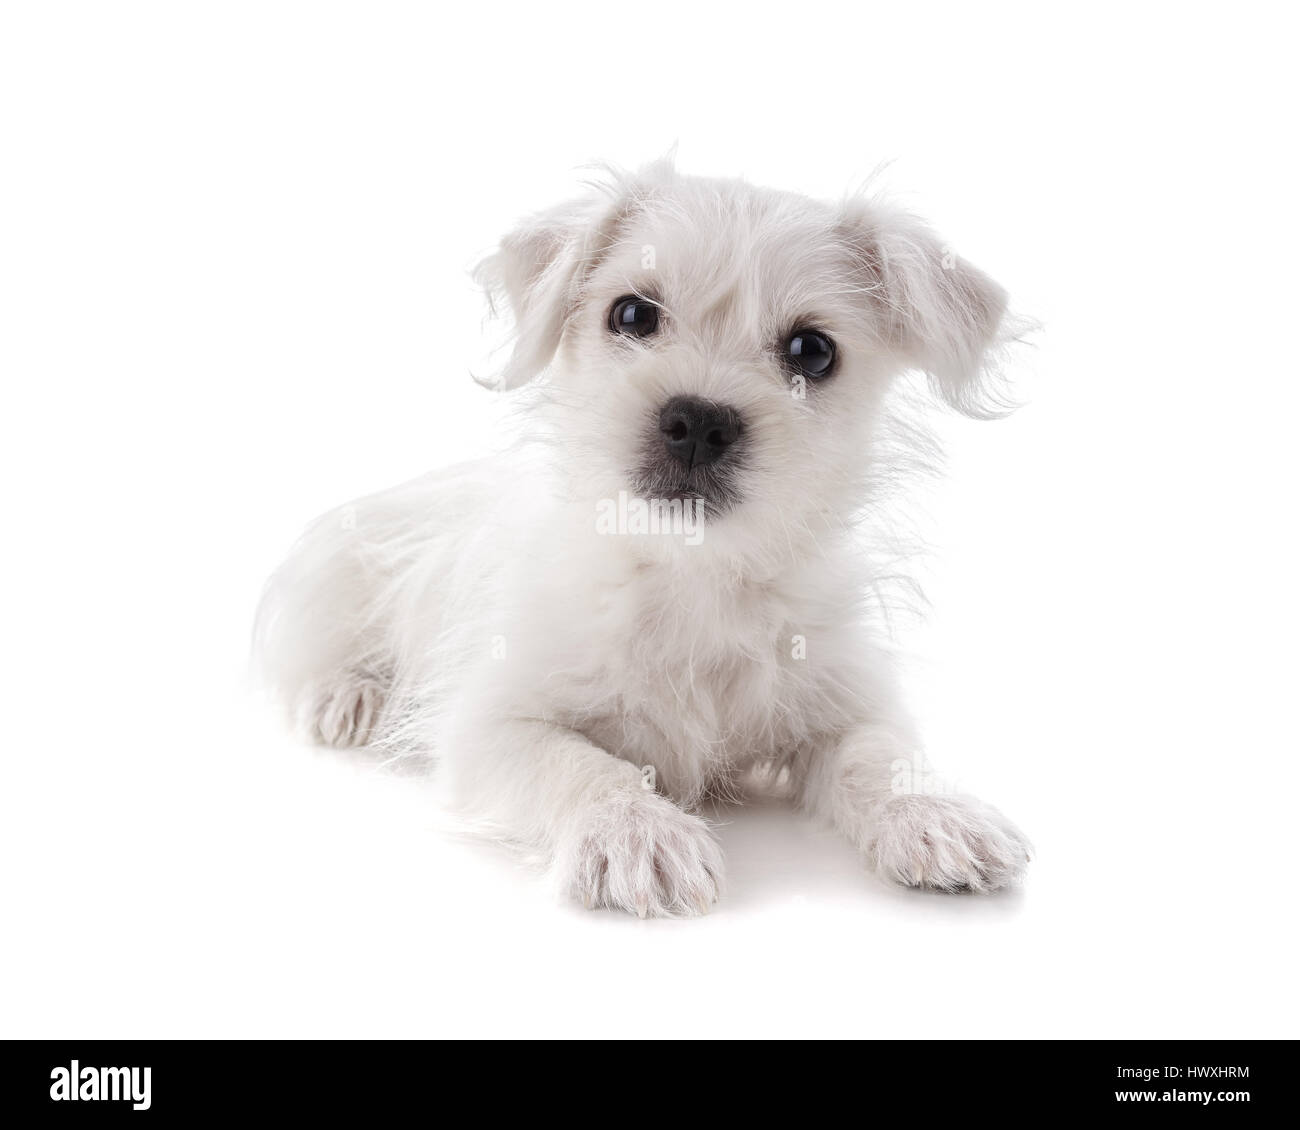 Maltese Westie or West Highland Terrier puppy isolated on white background - Stock Image